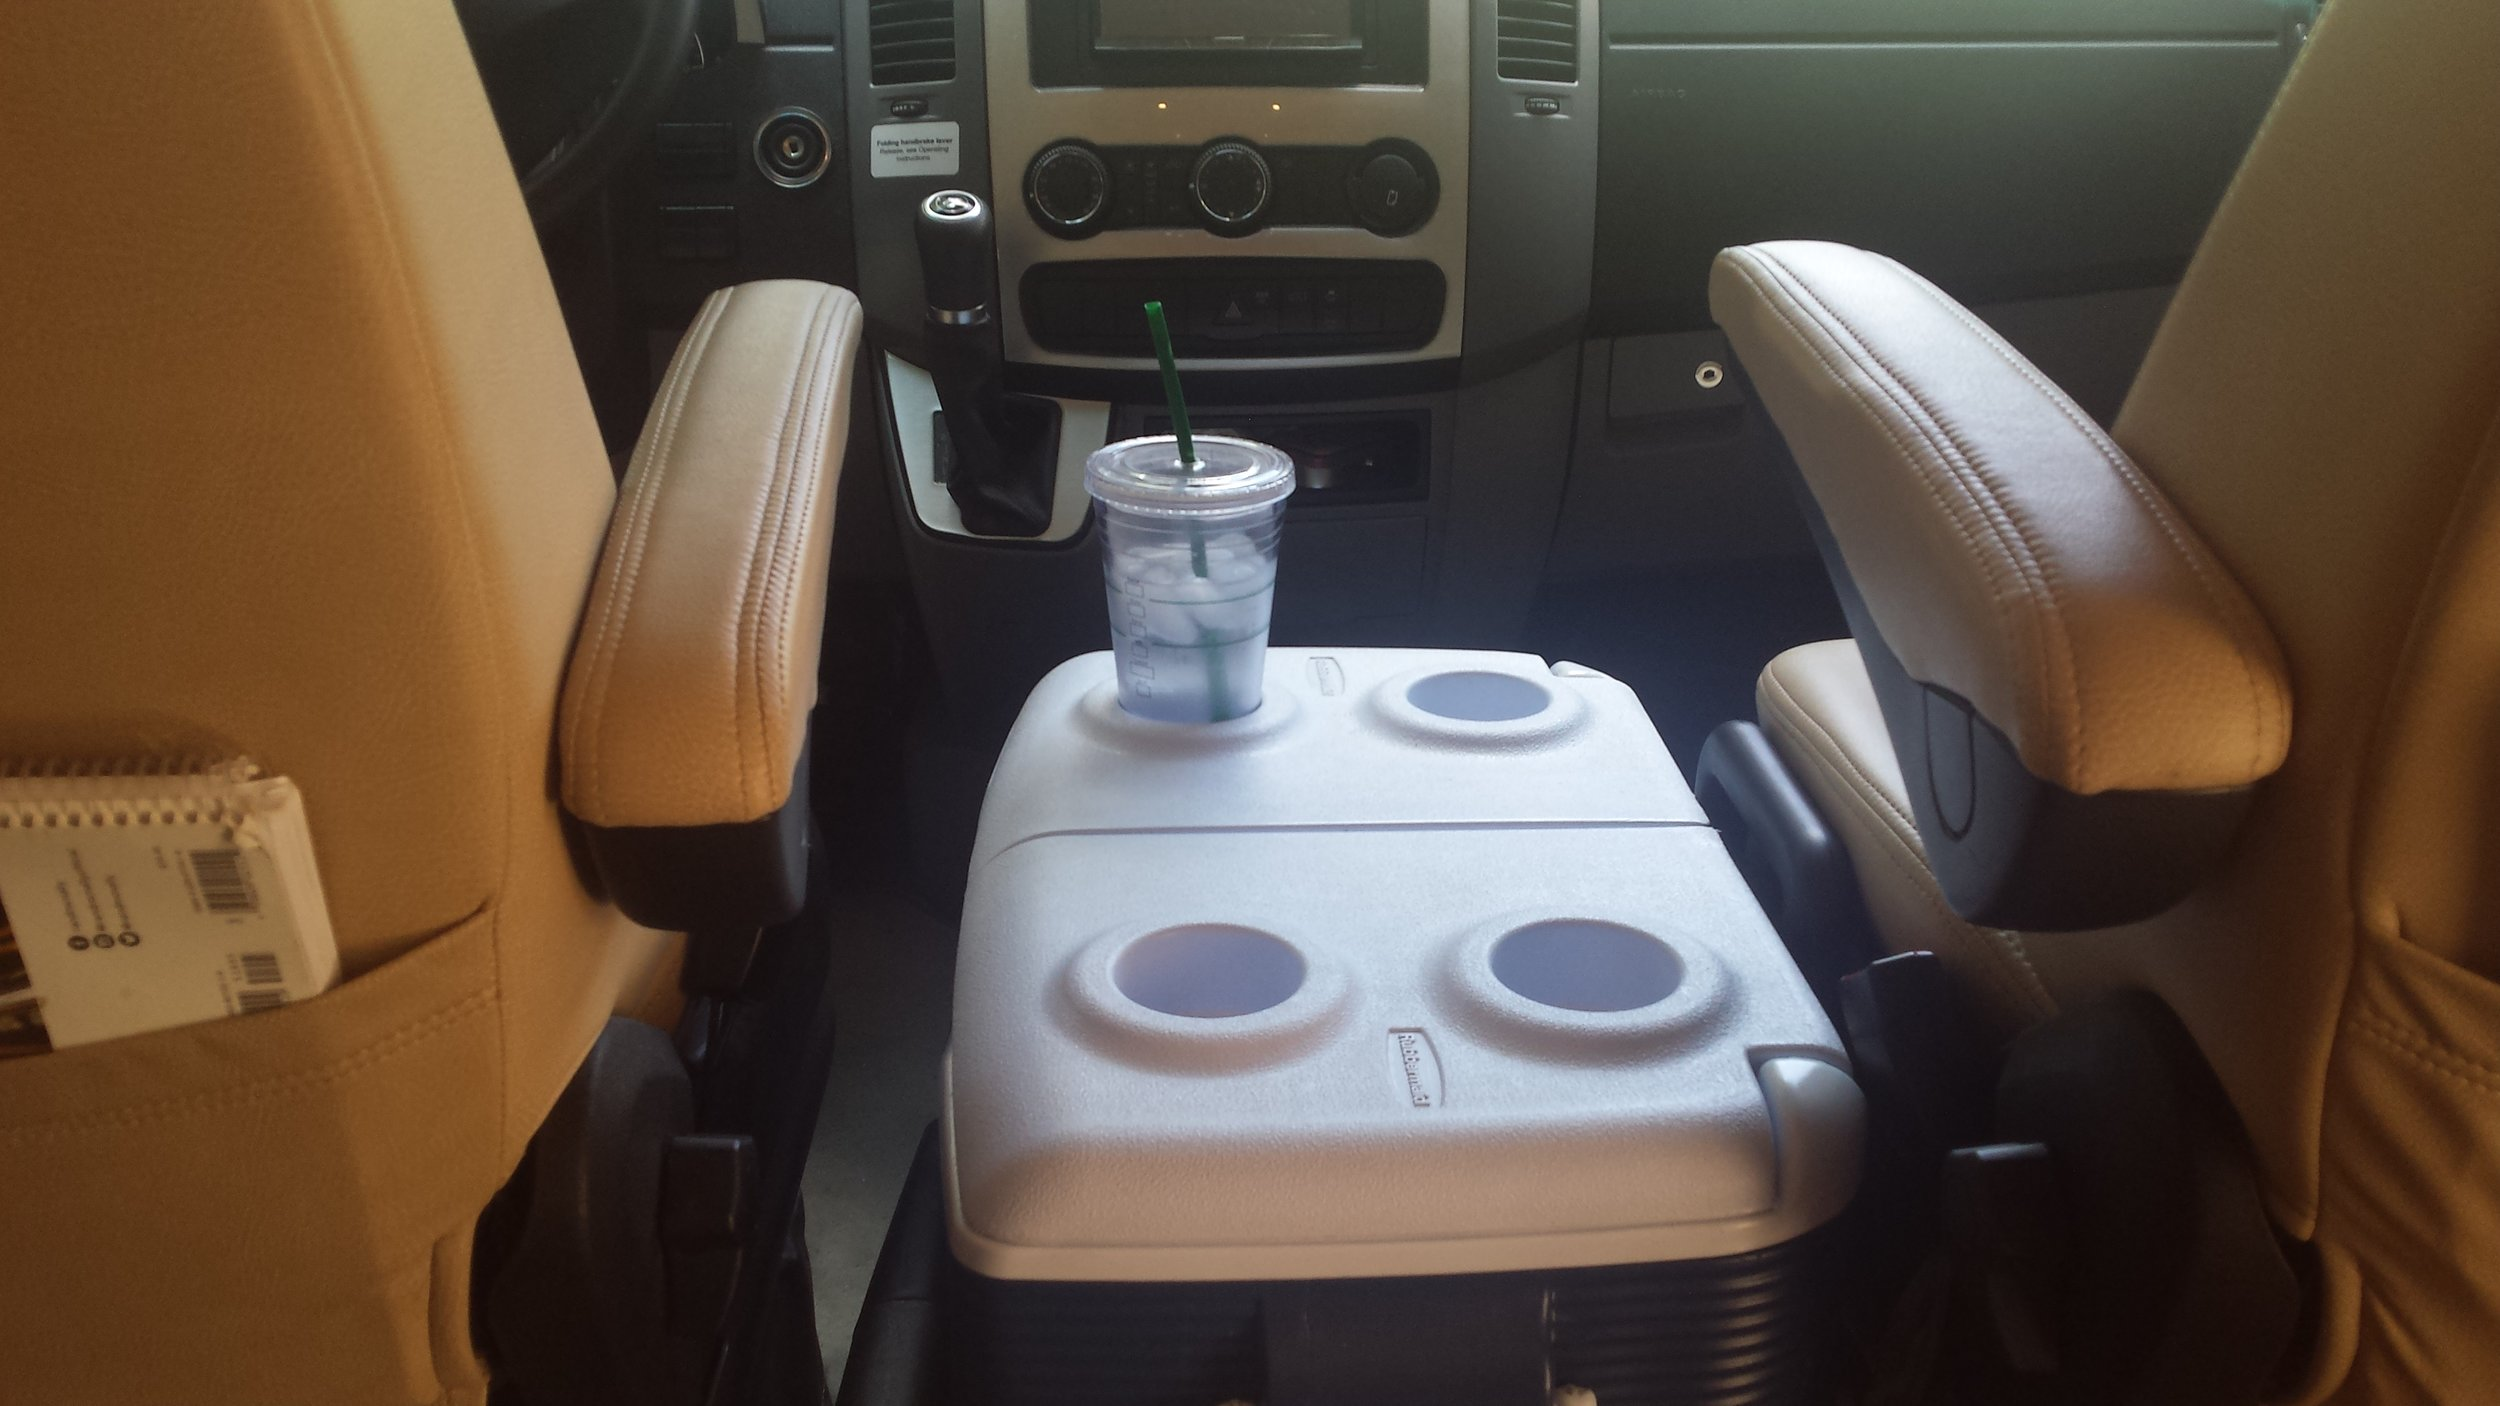 A cooler is a great way to increase storage in an RV and it can double as a table between the front seats